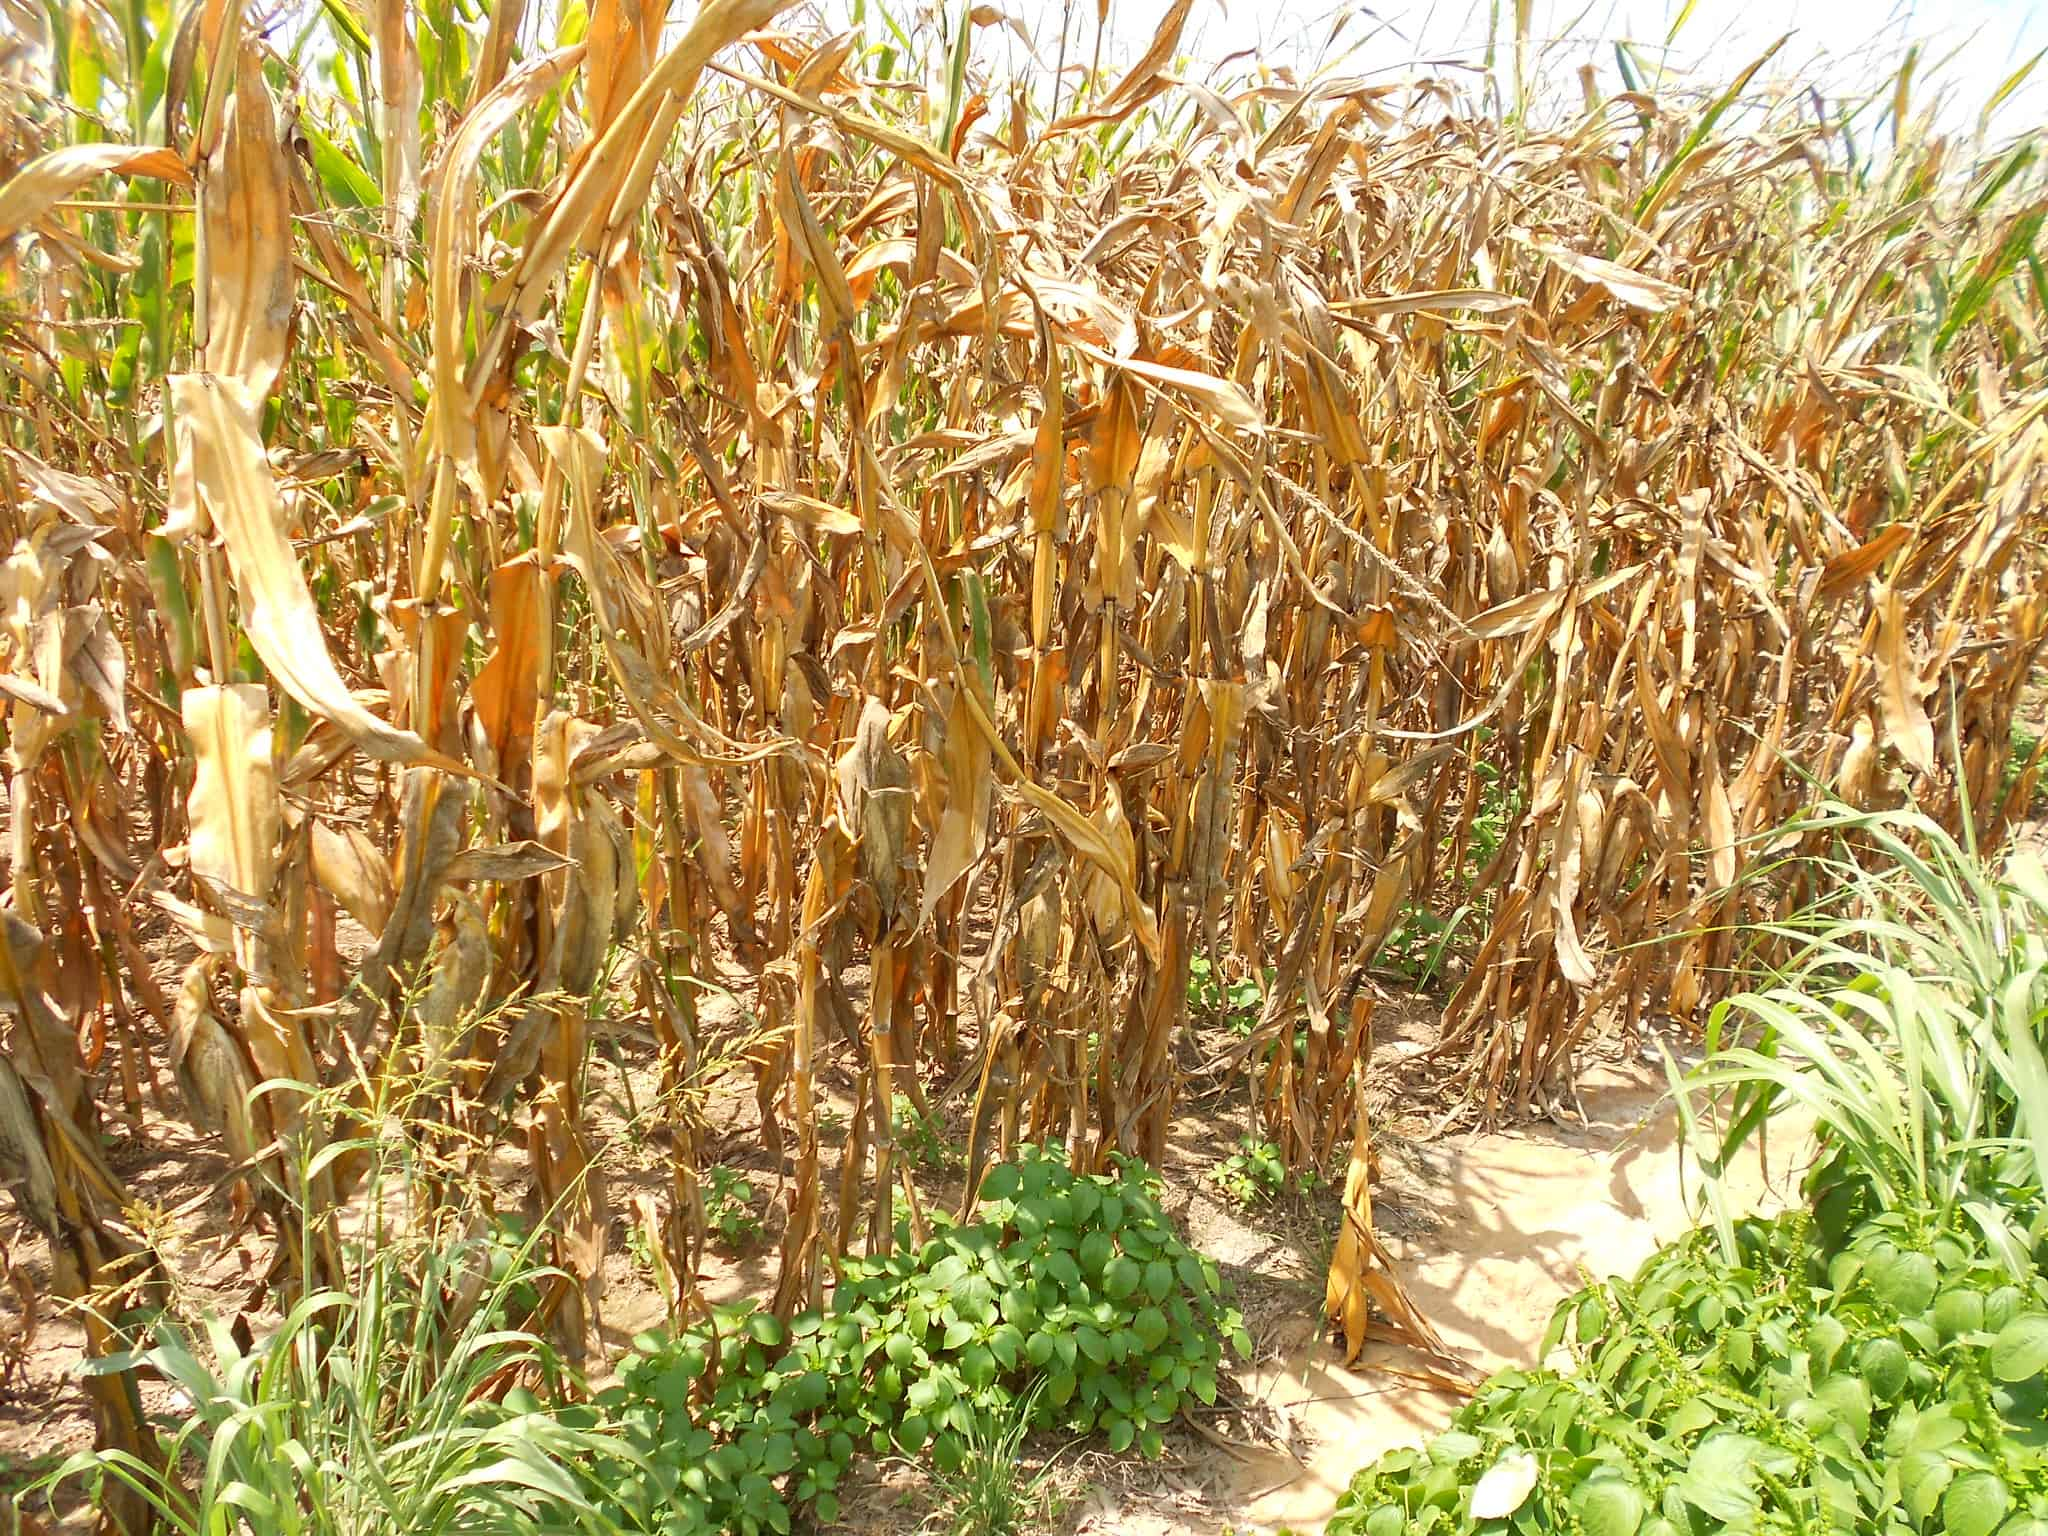 Corn affected by drought